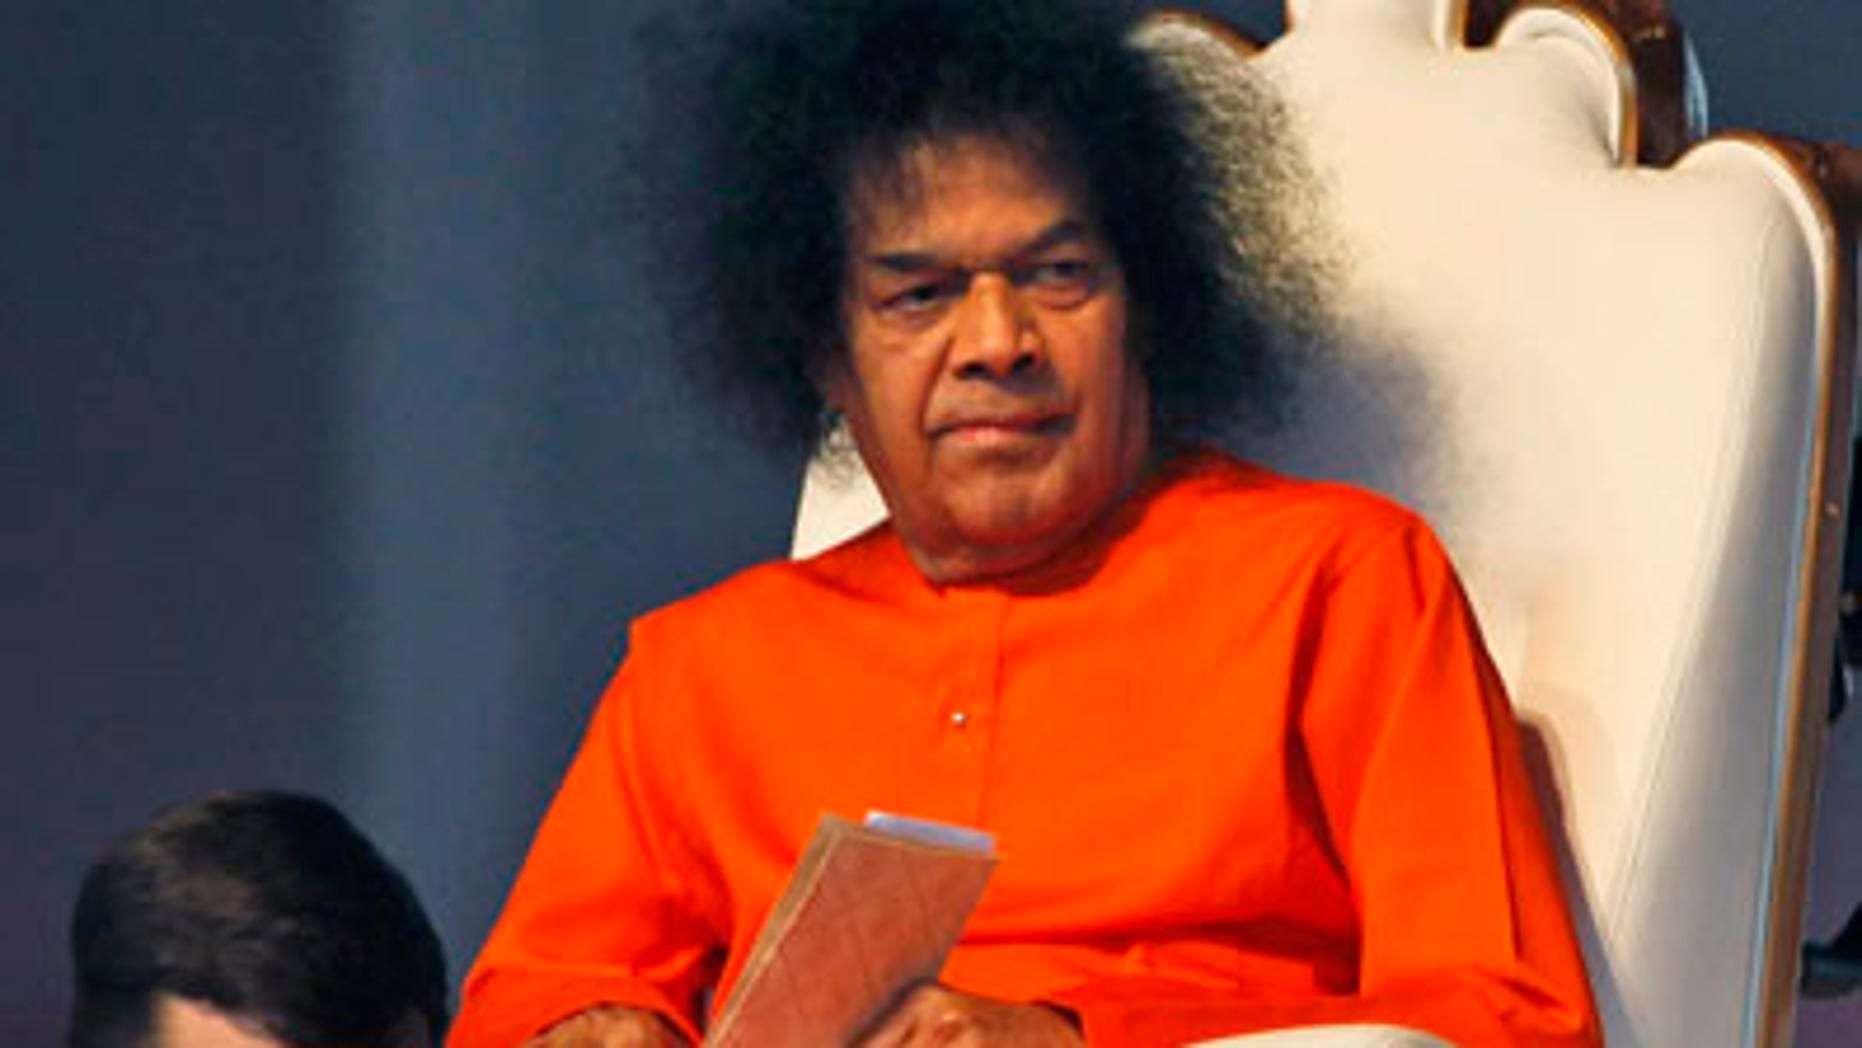 In this April 10, 2010 file photo, Indian spiritual leader Sathya Sai Baba looks on at a function to meet his devotees in New Delhi.  Dr. A.N. Safaya says Sathya Sai Baba died Sunday morning, after more than a week on breathing support and dialysis at the Sri Sathya Sai Institute of Higher Medical Sciences. (AP/File)